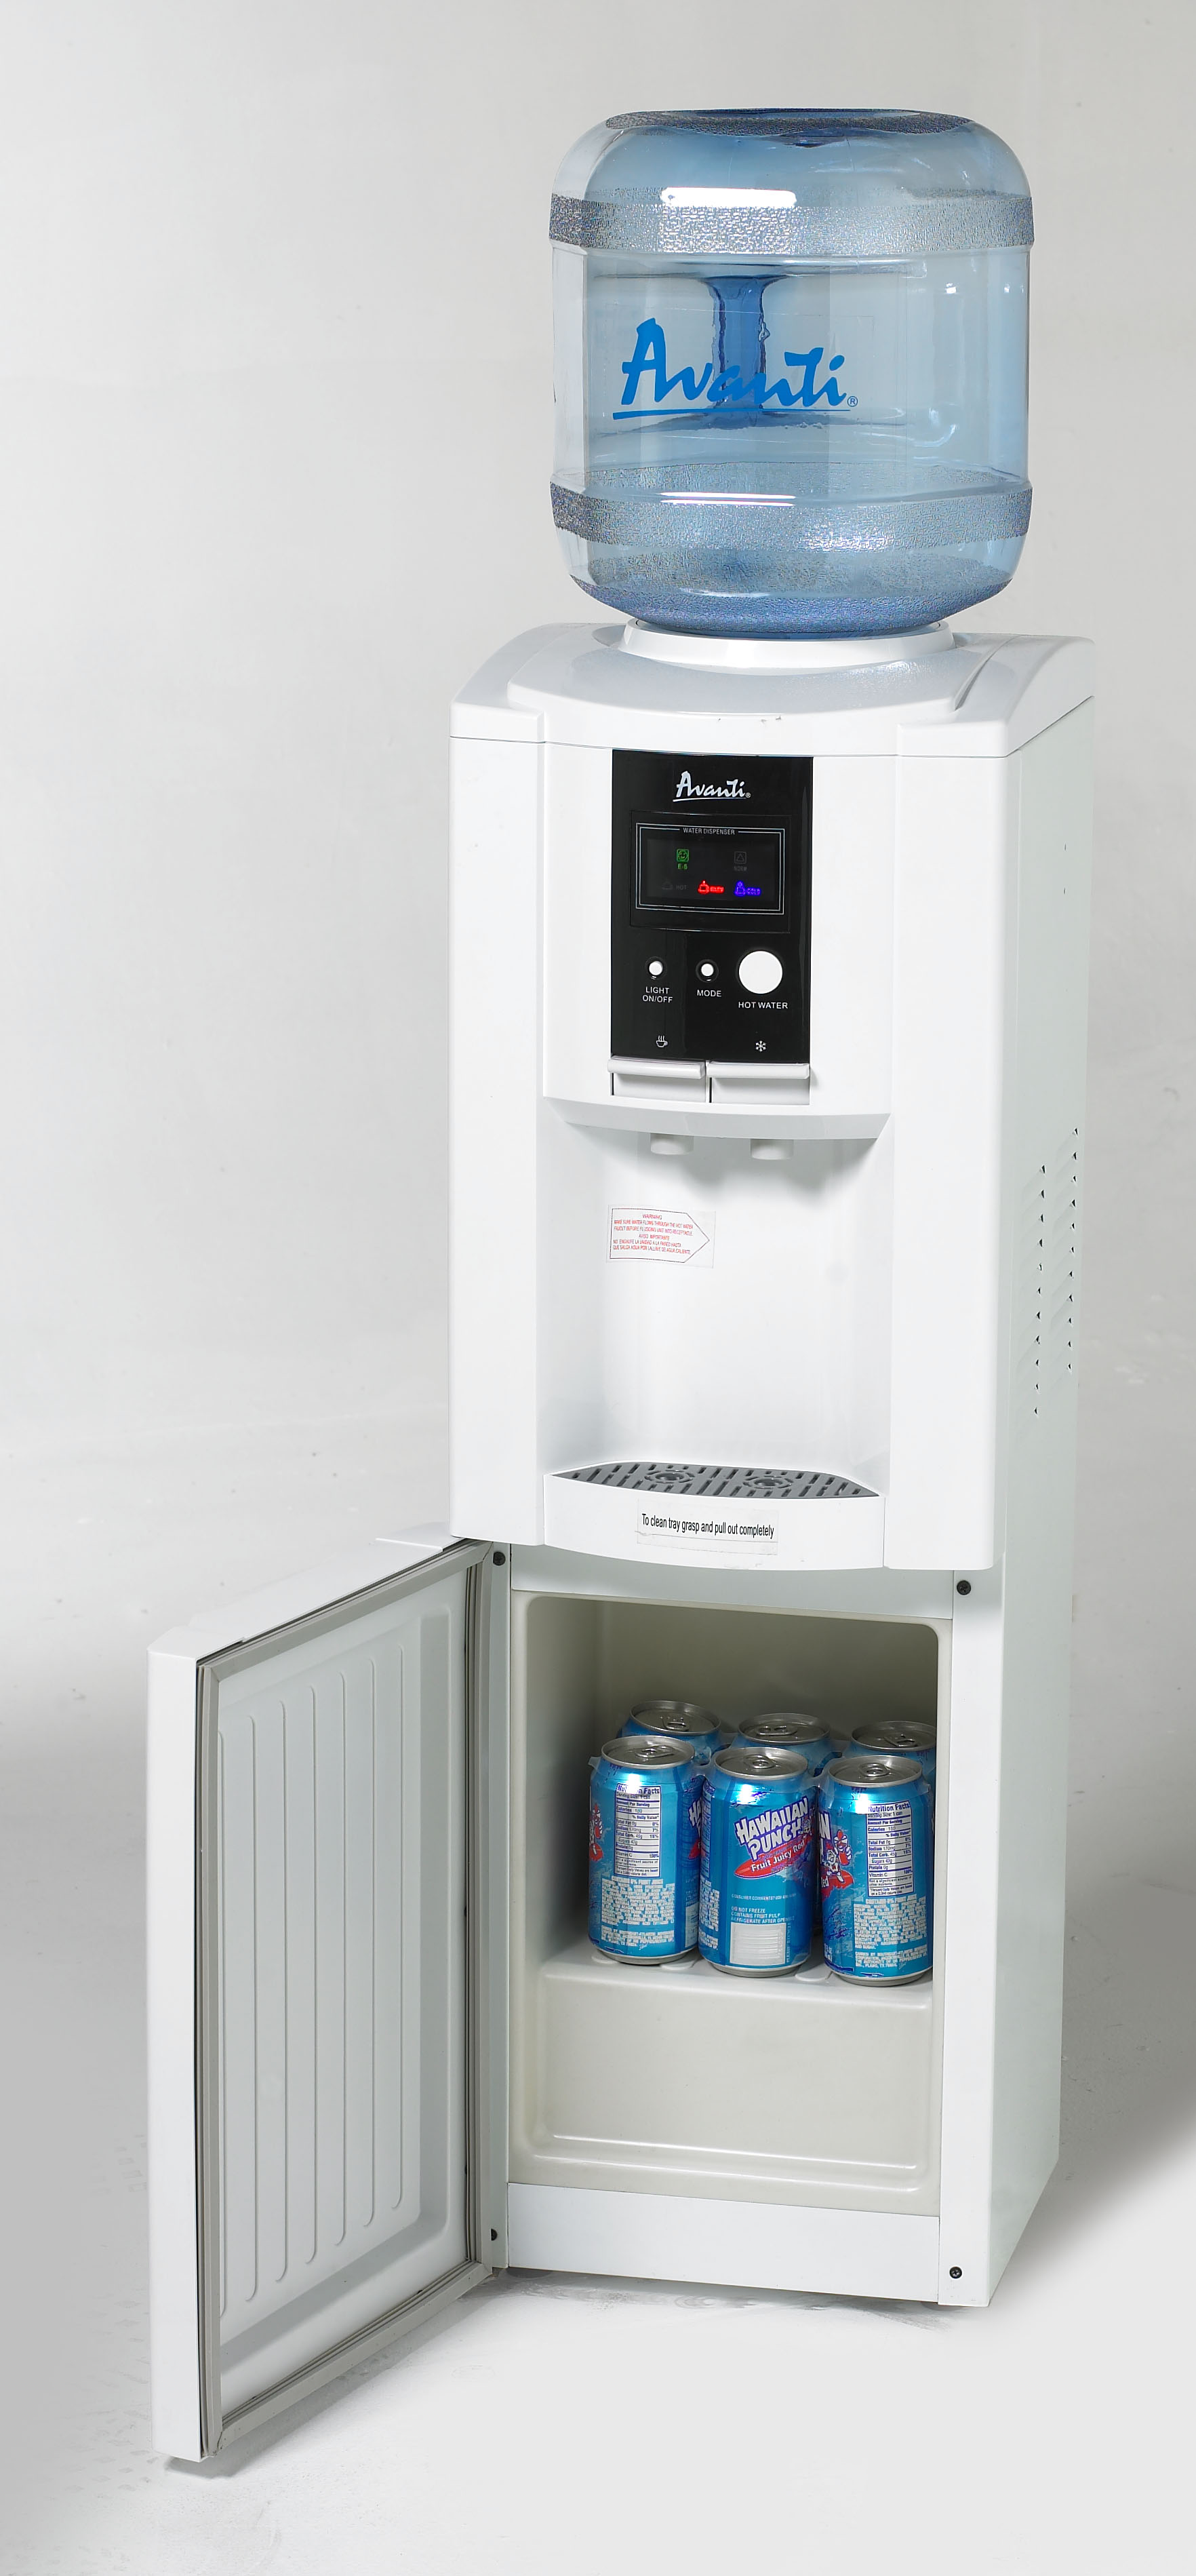 Charming Water Cooler Storage #6 - Avanti WDP75 Hot And Cold Water Dispenser - Walmart.com